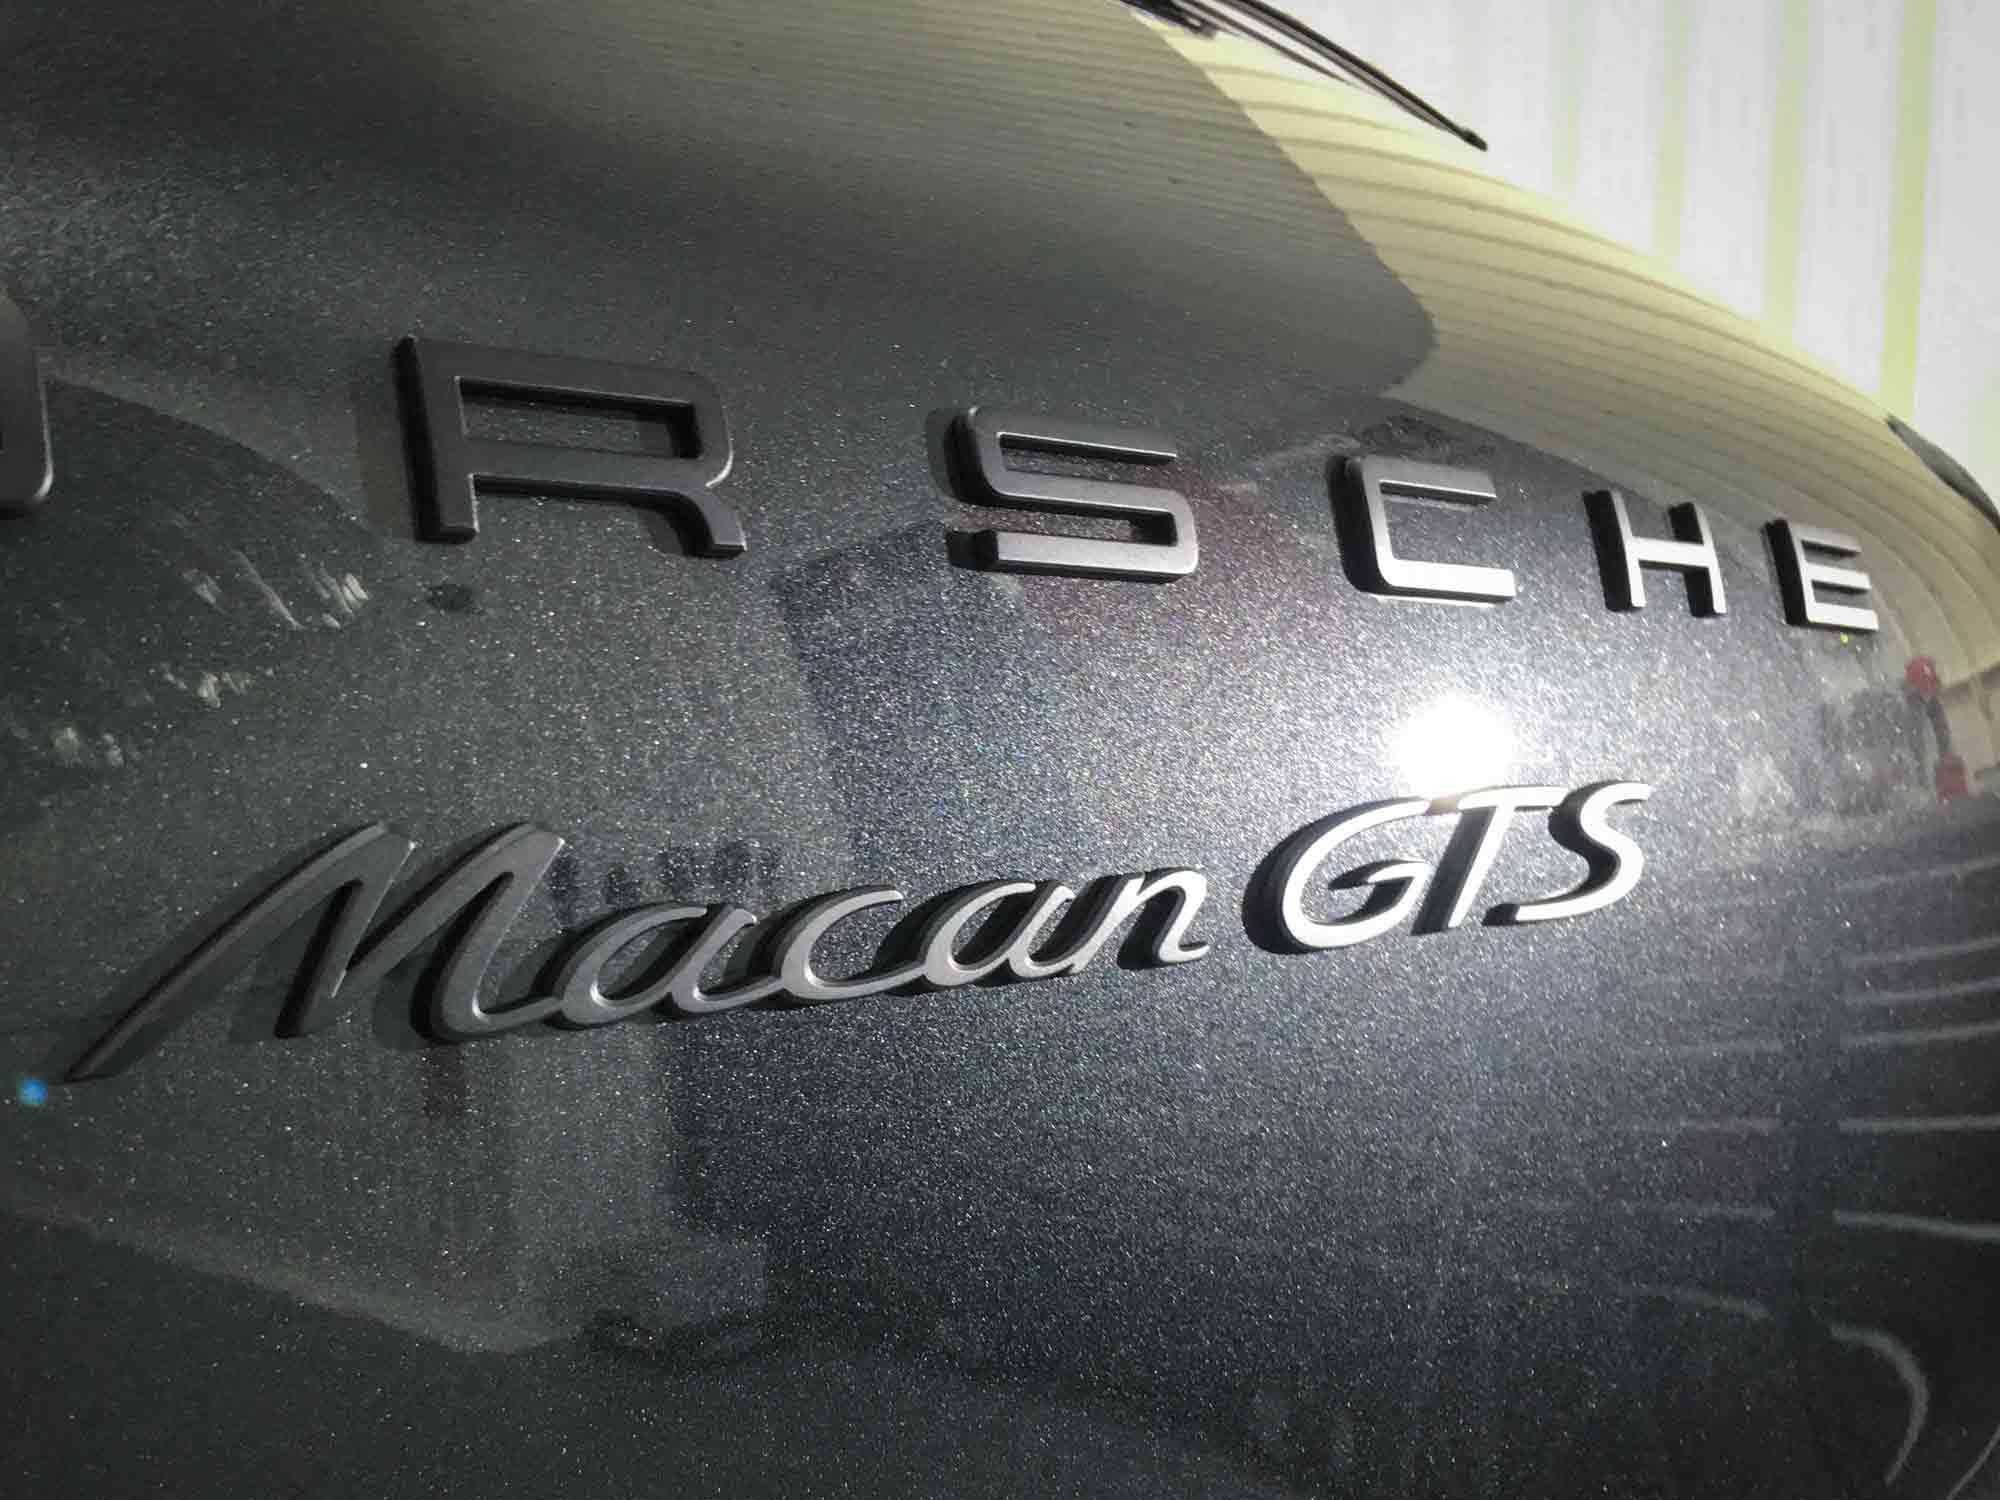 Porsche_Macan_GTS-badge-detail